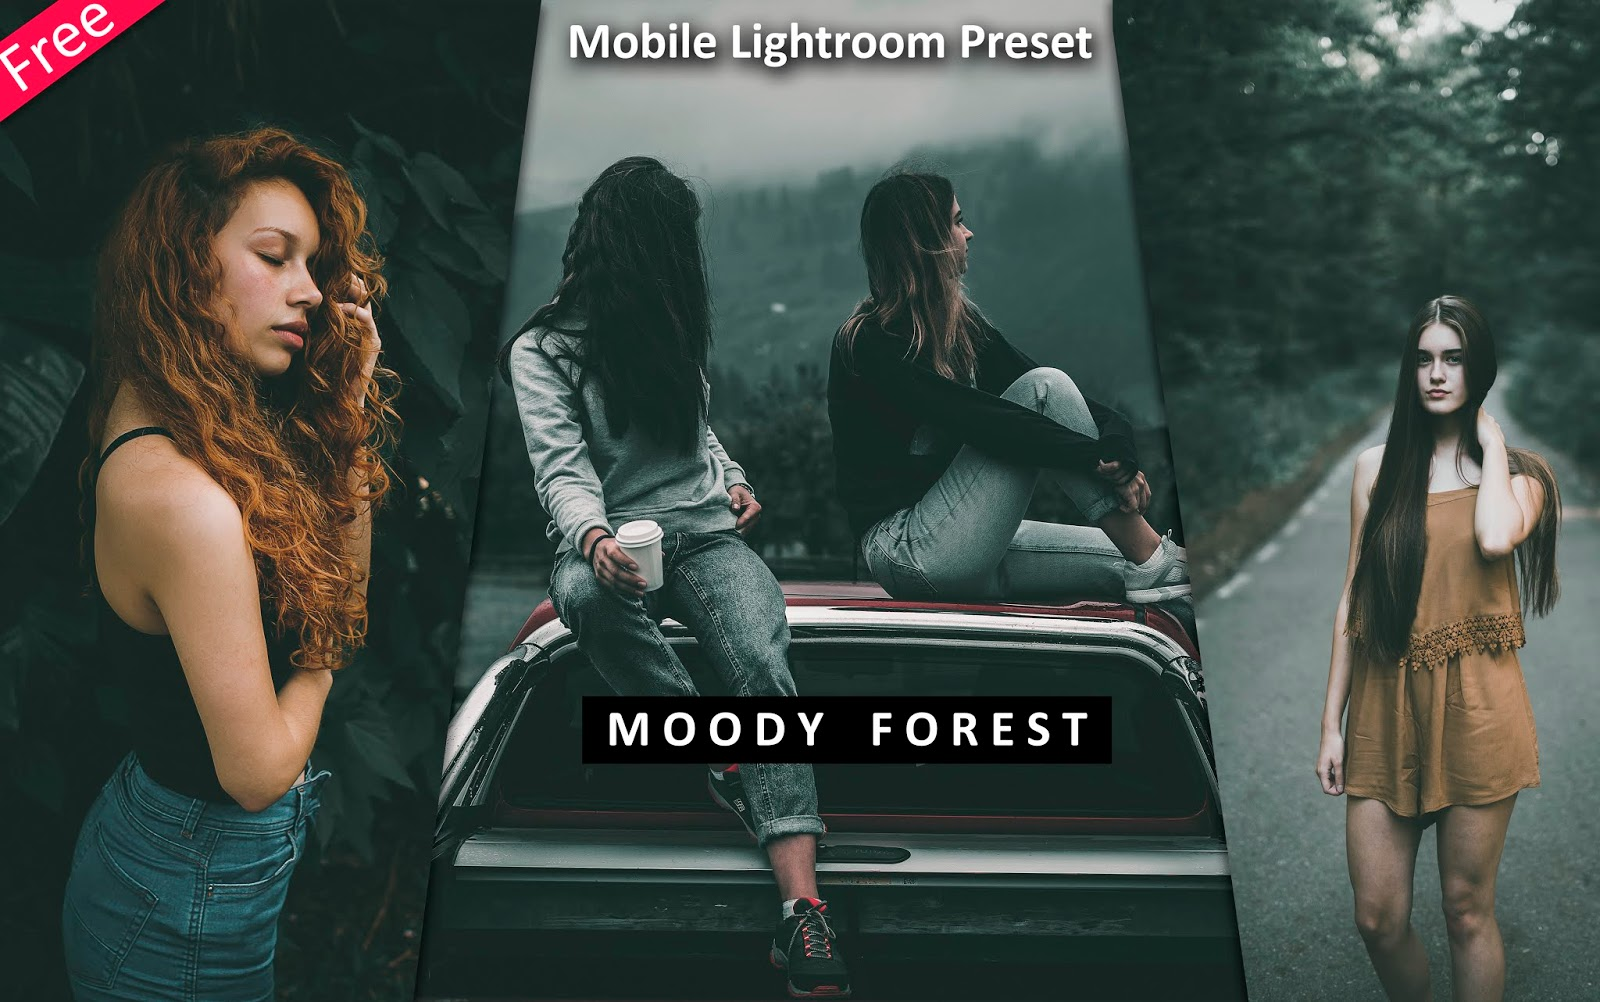 Download Moody Forest Mobile Lightroom Preset for Free | How to Edit Your Photos Like moody Forest Effect in Mobile Lightroom App